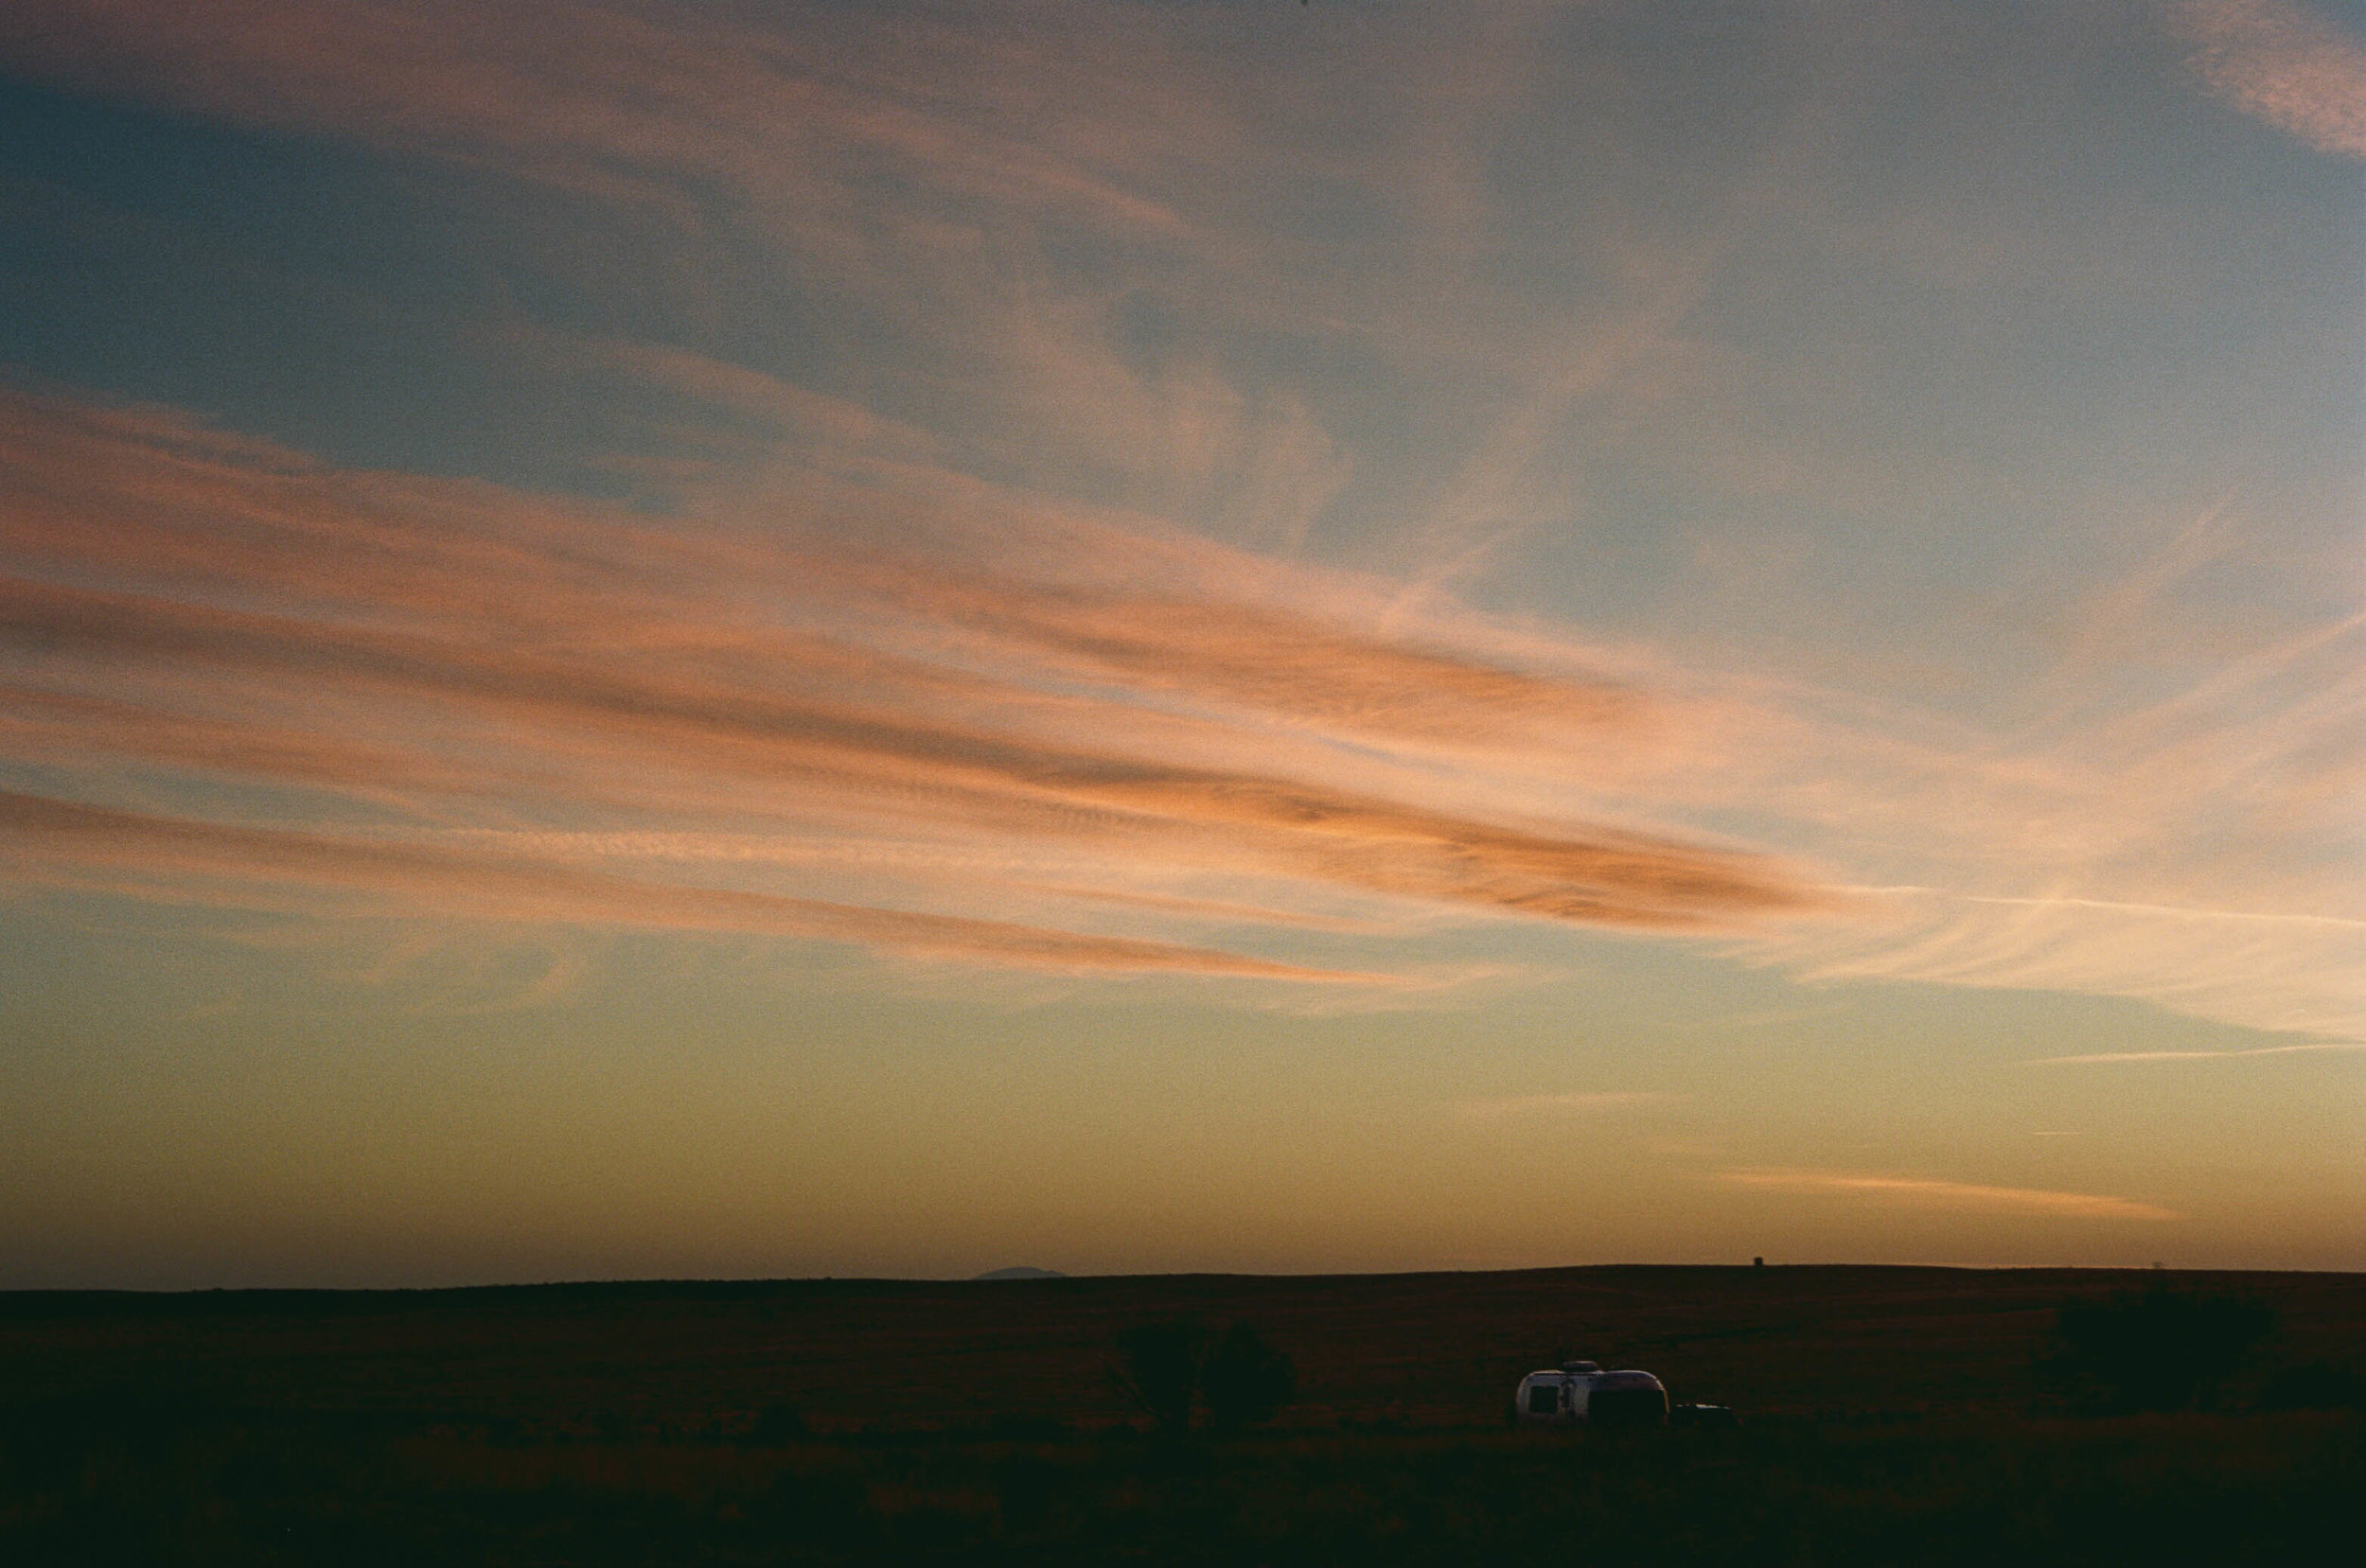 road-trip-marfa-texas-sunset-airstream-airbnb-portra-160-1